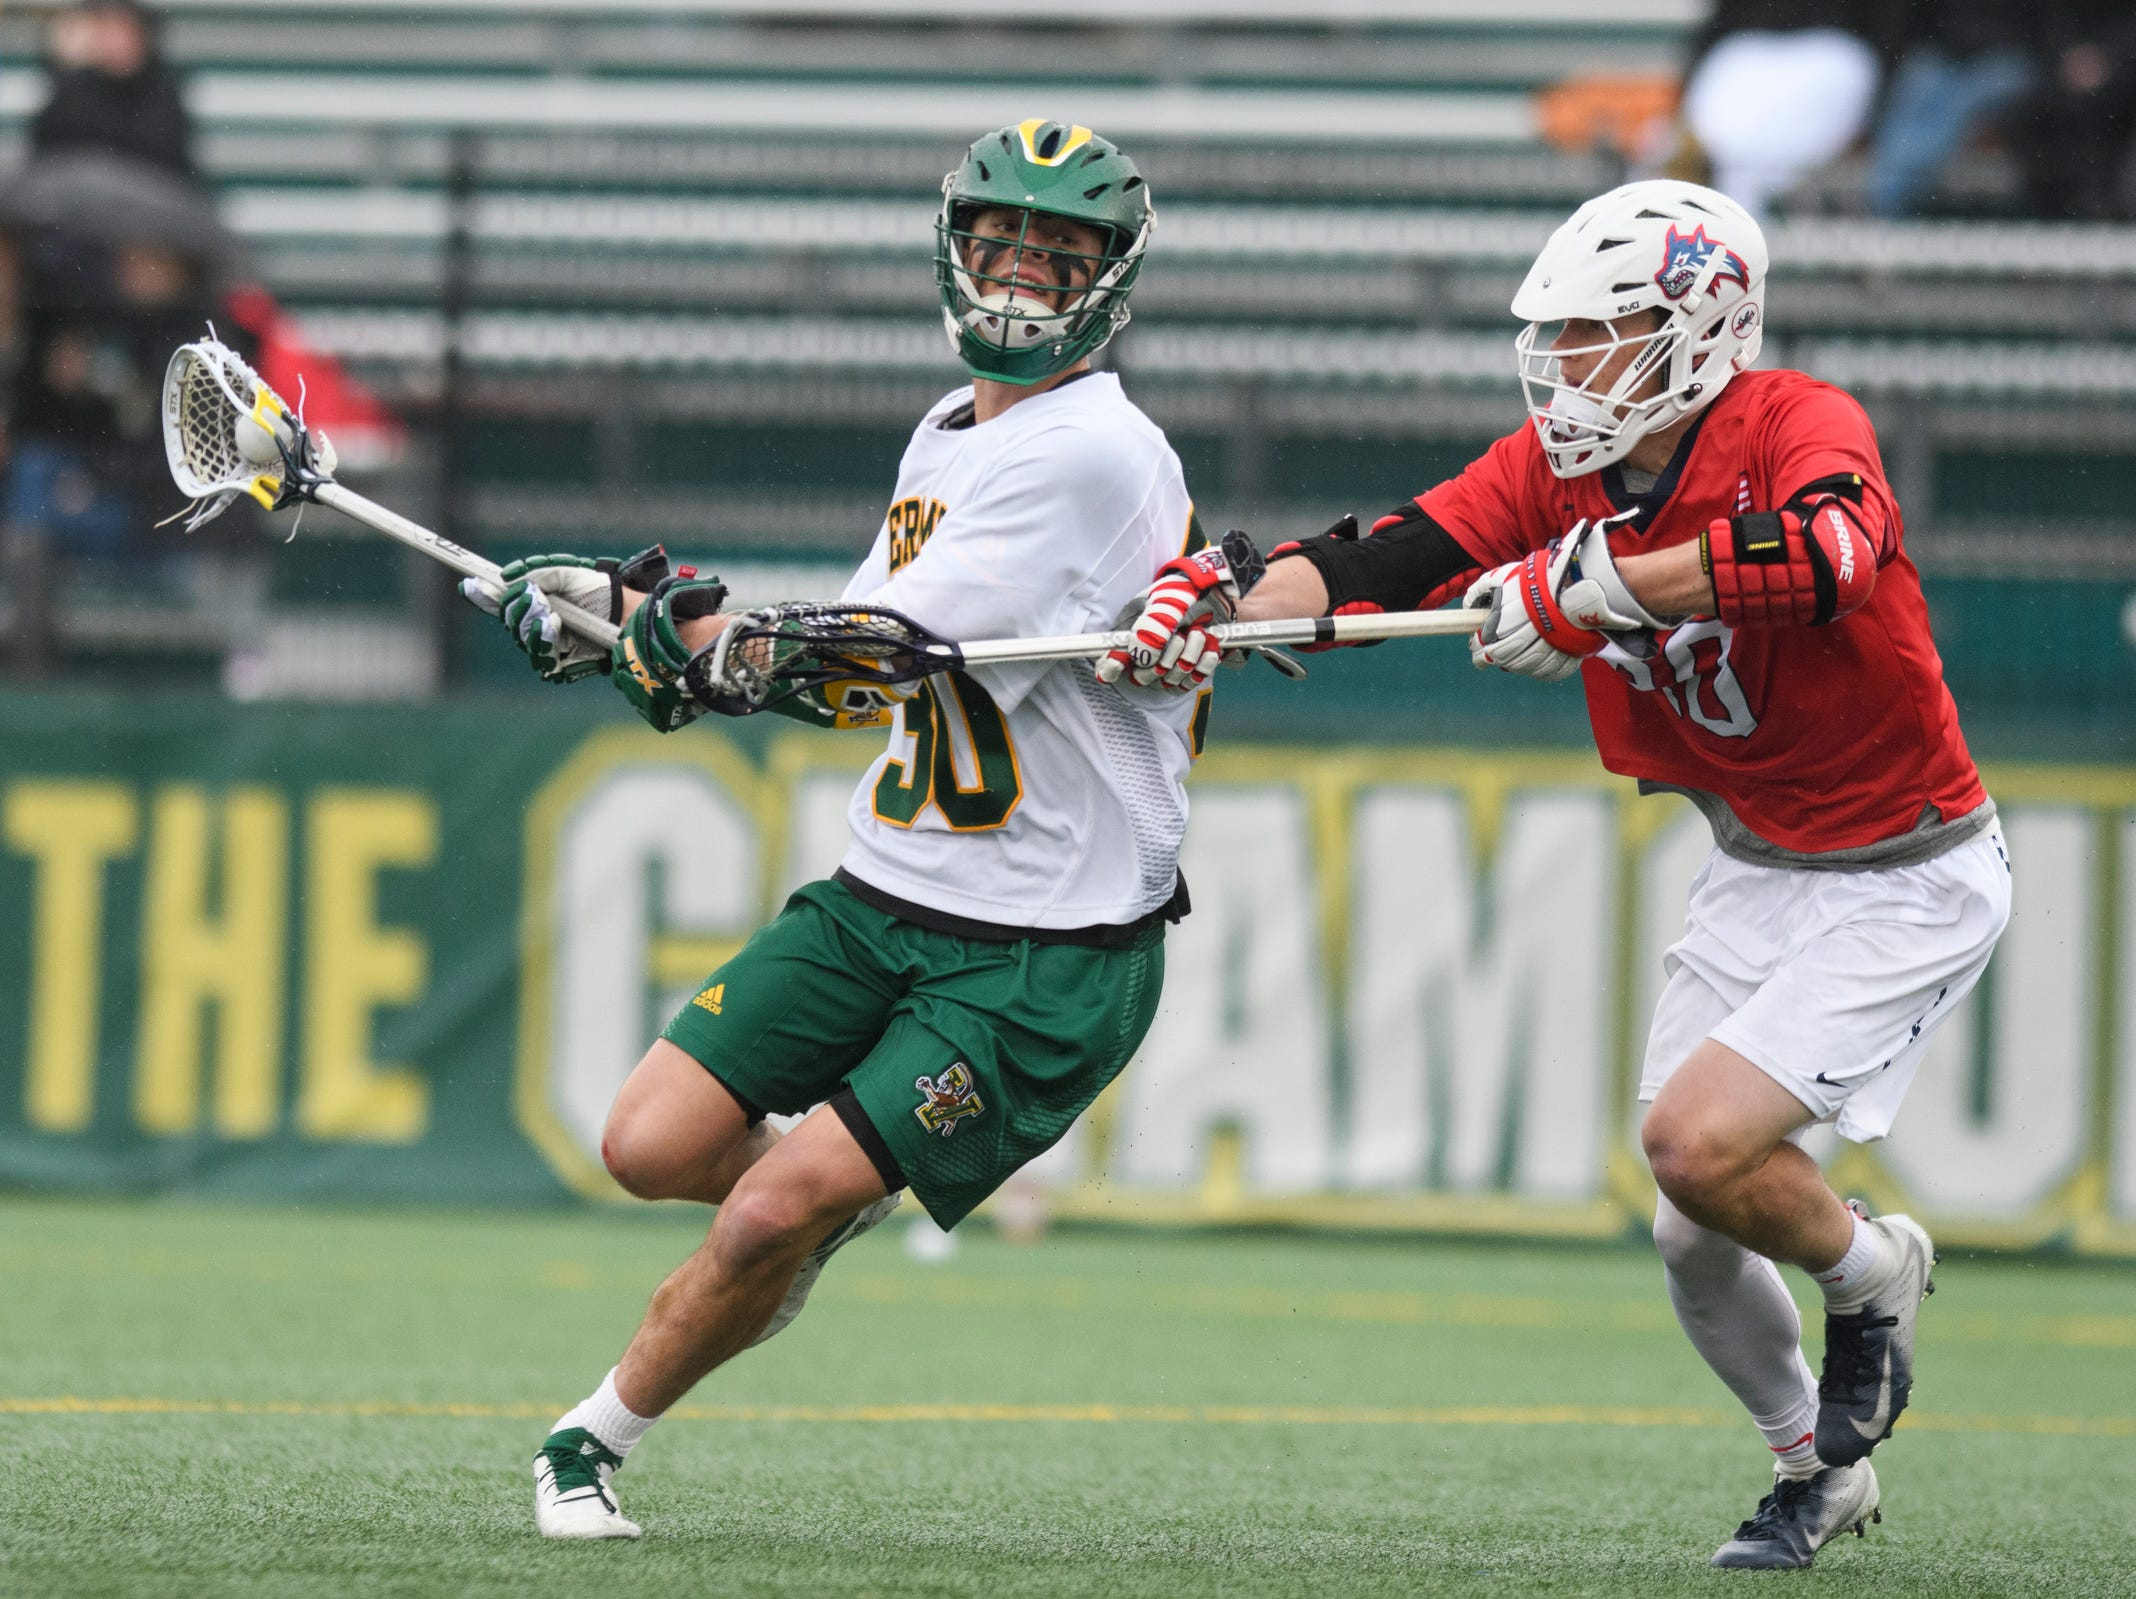 Vermont's Sal Iaria (30) runs with the ball during the men's lacrosse game between the Stony Brook Sea Wolves and the Vermont Catamounts at Virtue Field on Saturday afternoon April 20, 2019 in Burlington, Vermont.